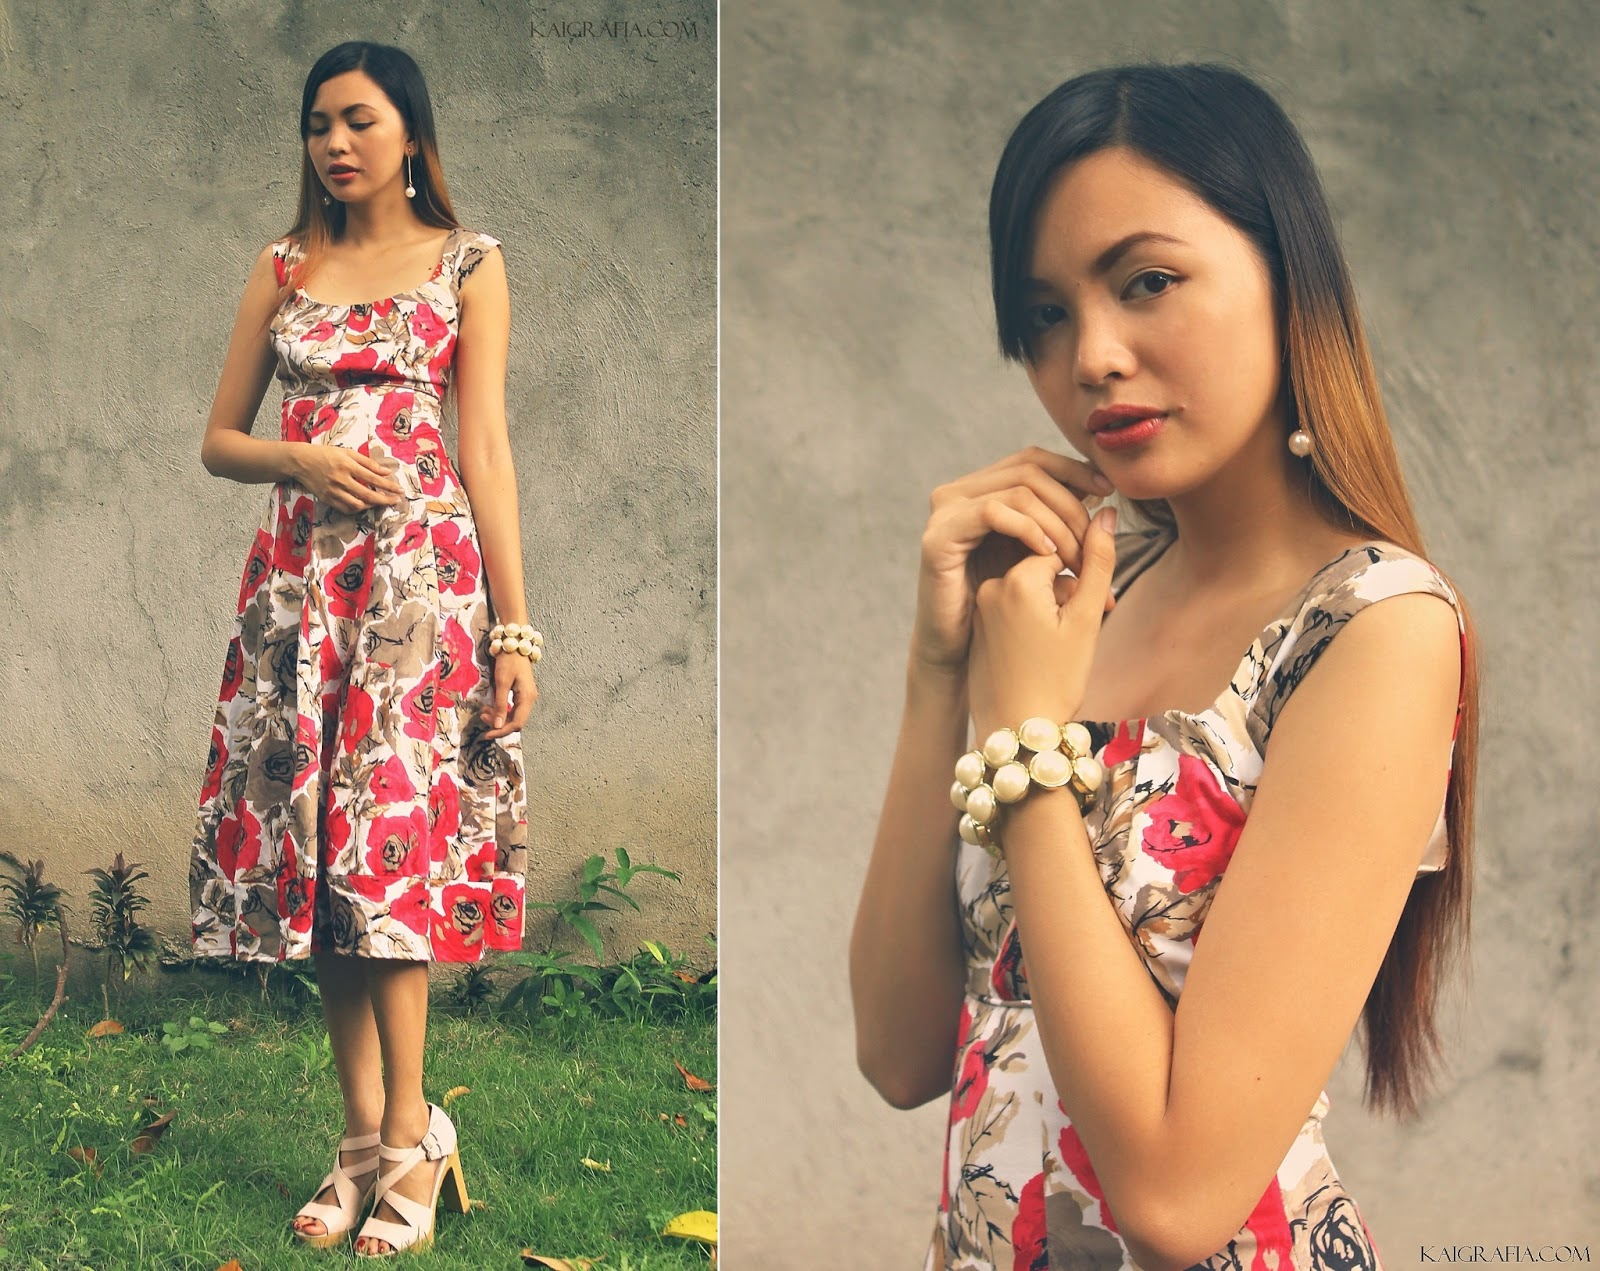 Floral Printed Dresses from Tideshe